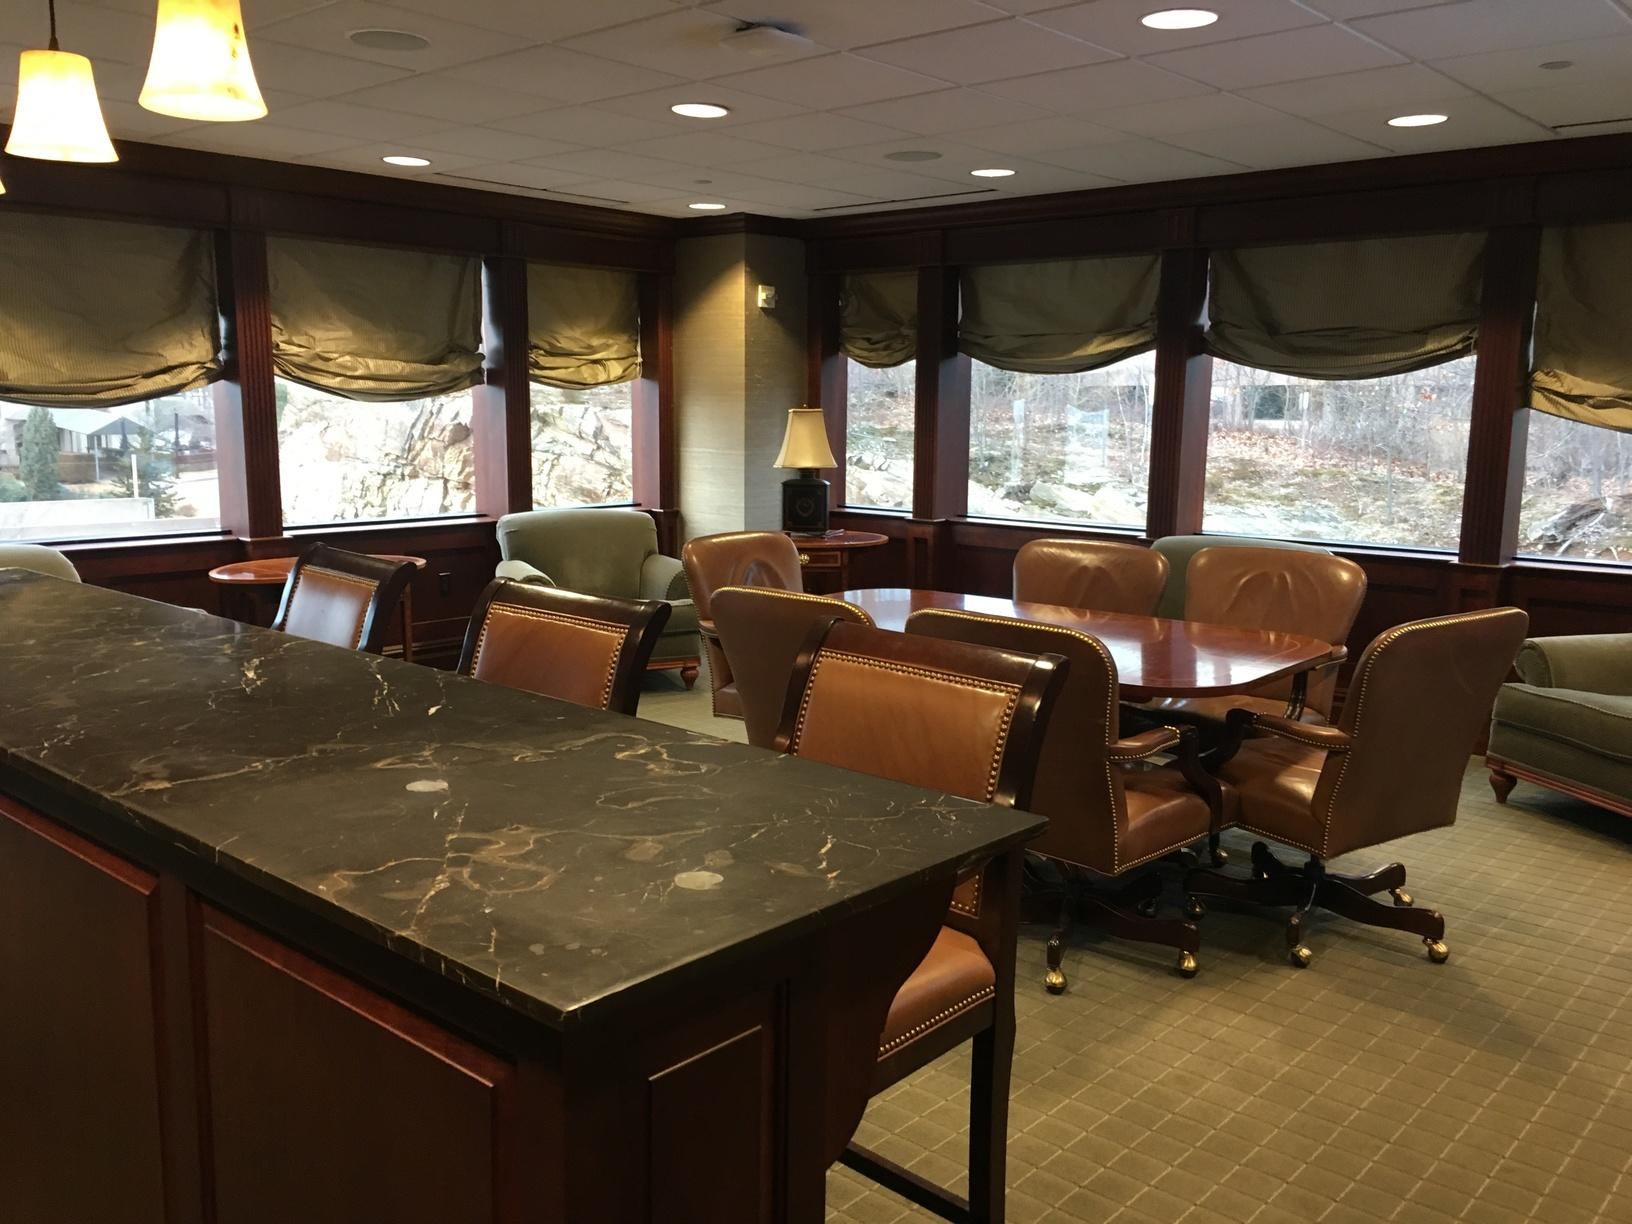 Barnum Finanical Group Conference Room Installation